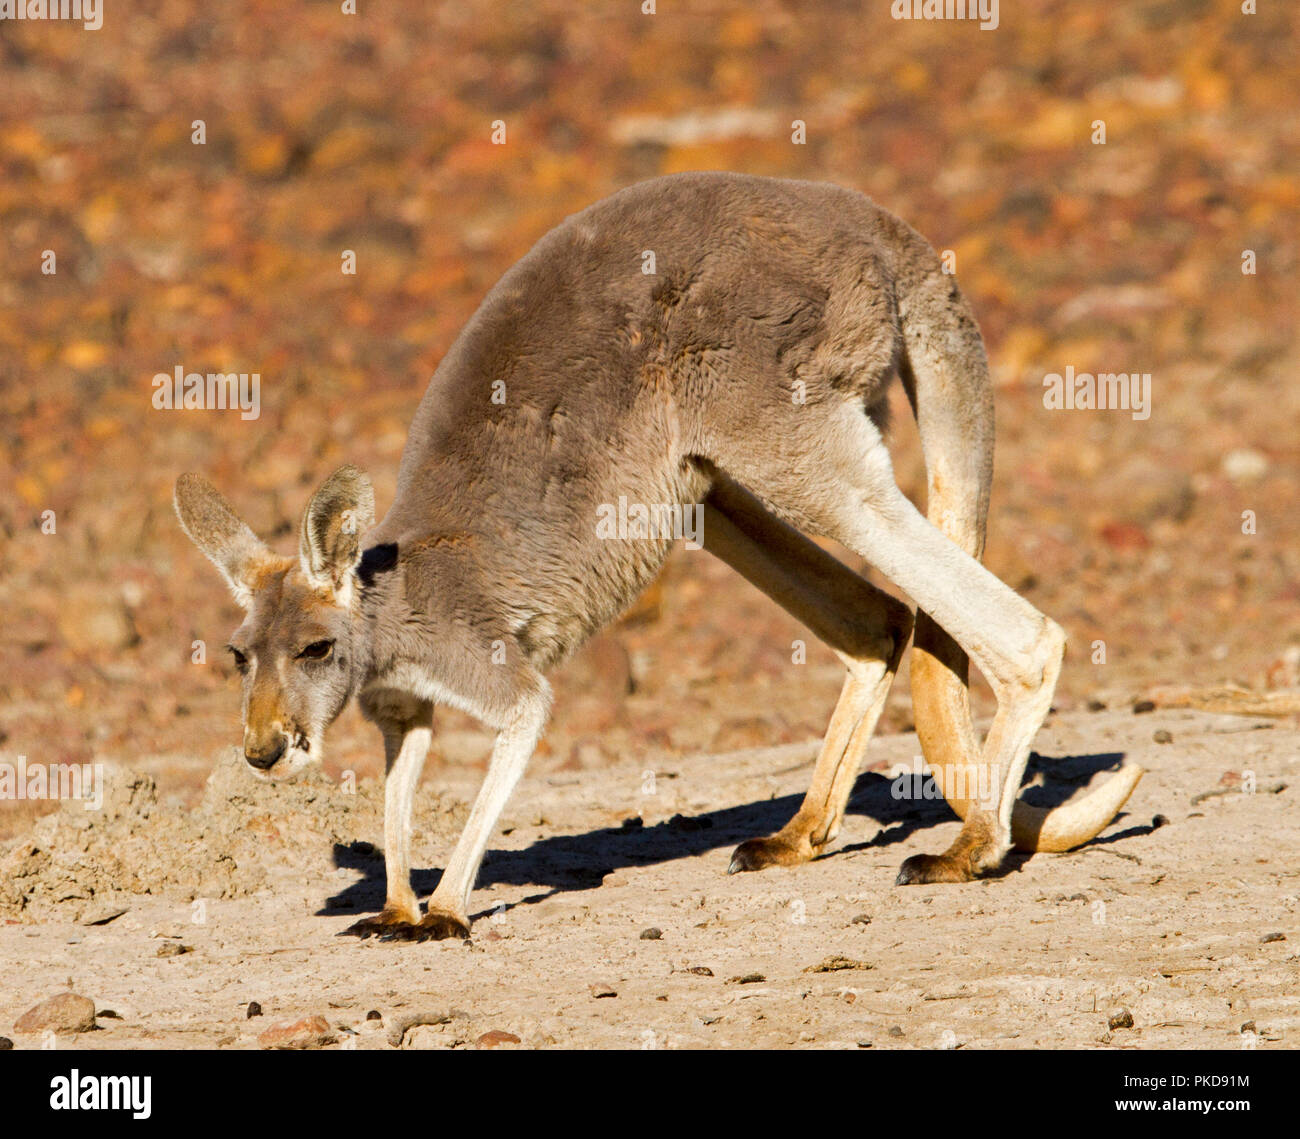 Red kangaroo, Macropus rufus, on barren red soul of Australian outback during drought at Culgoa Floodplains National Park, Qld - Stock Image